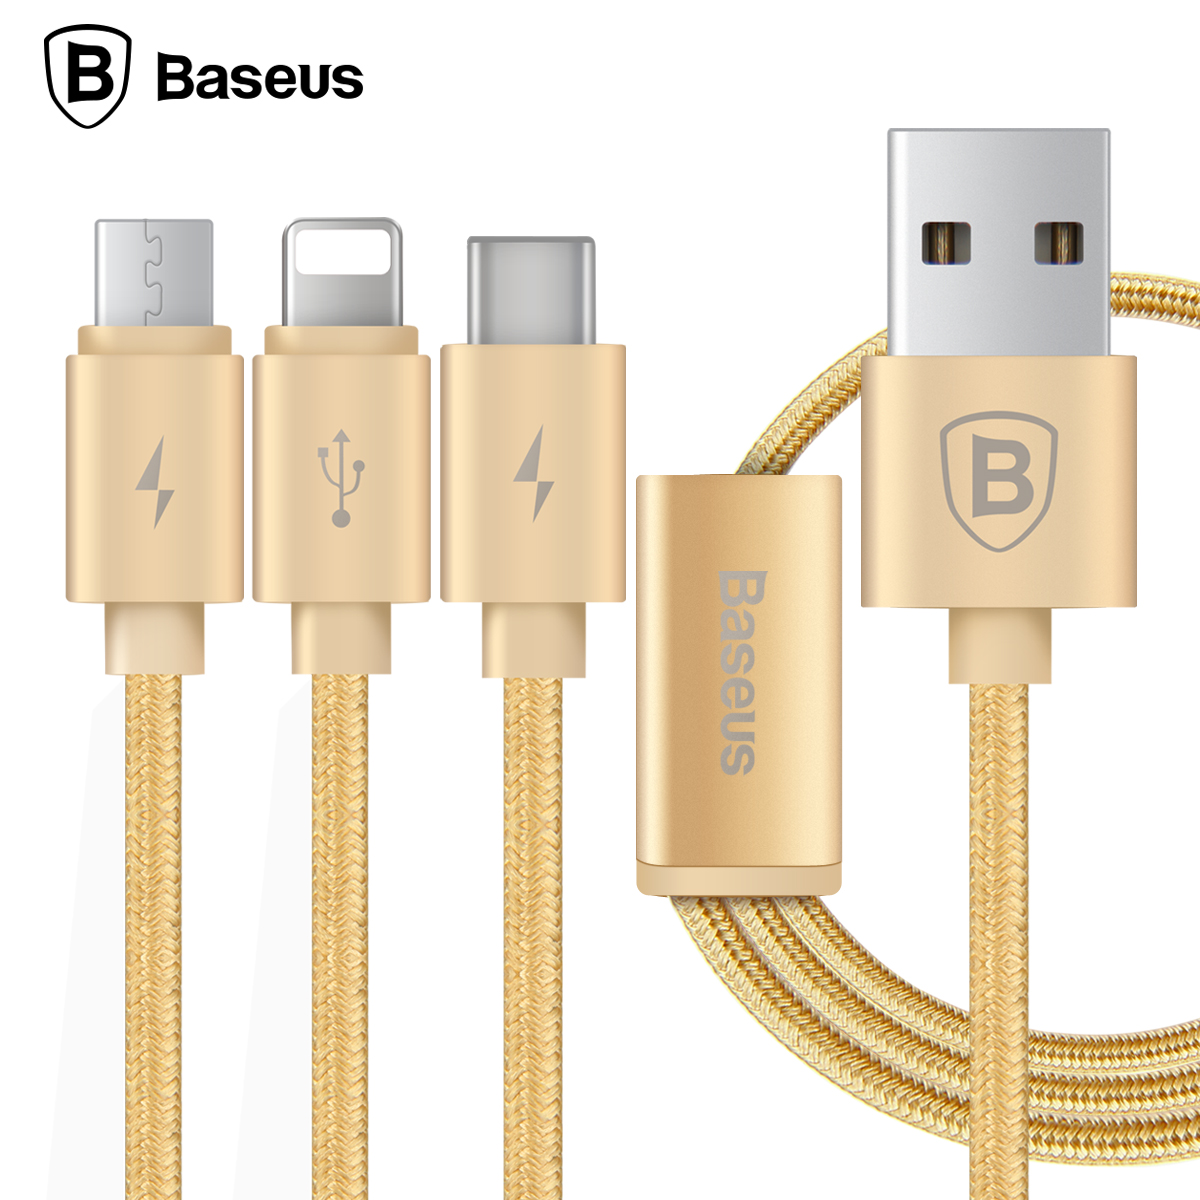 Baseus 3 1 Charging Cable iPhone Micro USB Type C Multi Charger Cable iPhone 7 6s 6 SE 5s Android Phone